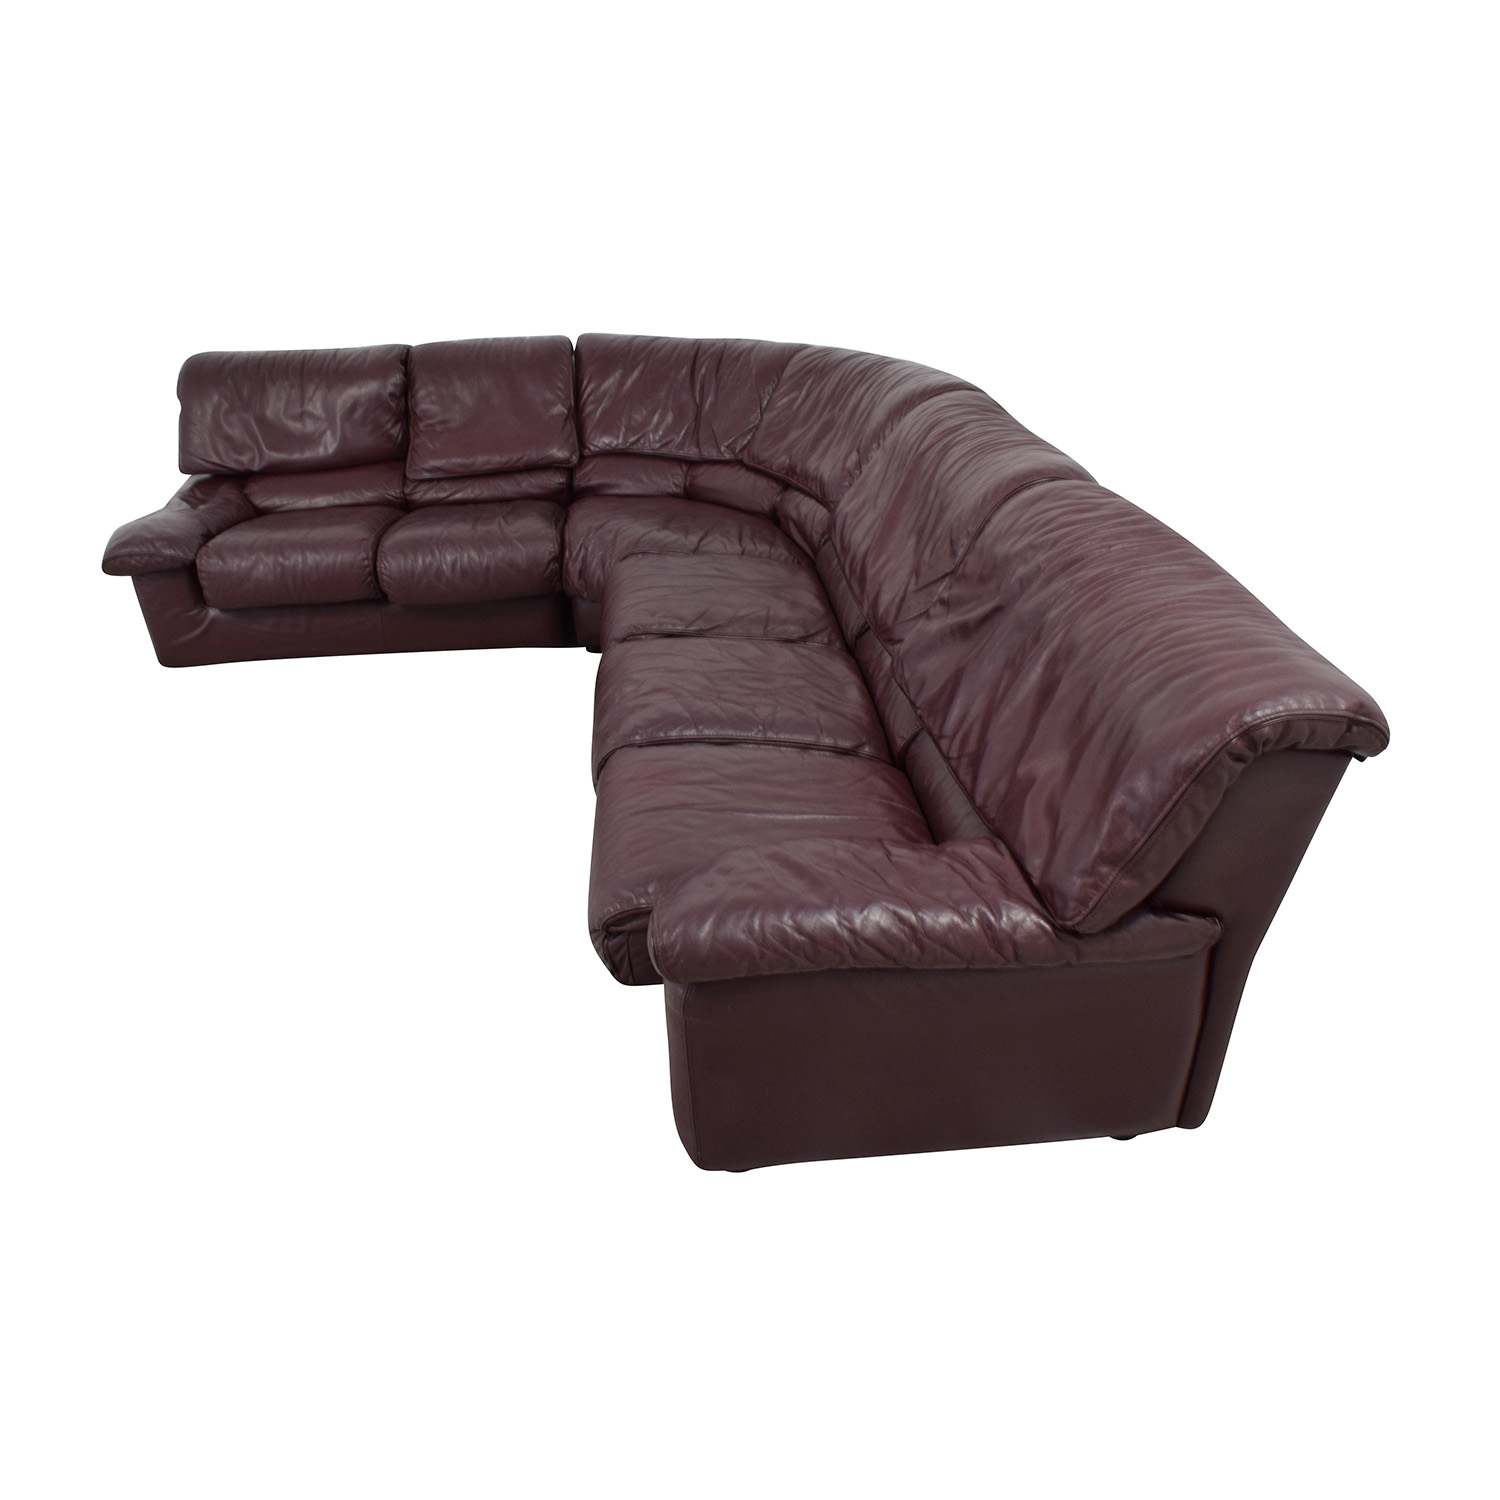 roche bobois brown leather sectional sectionals